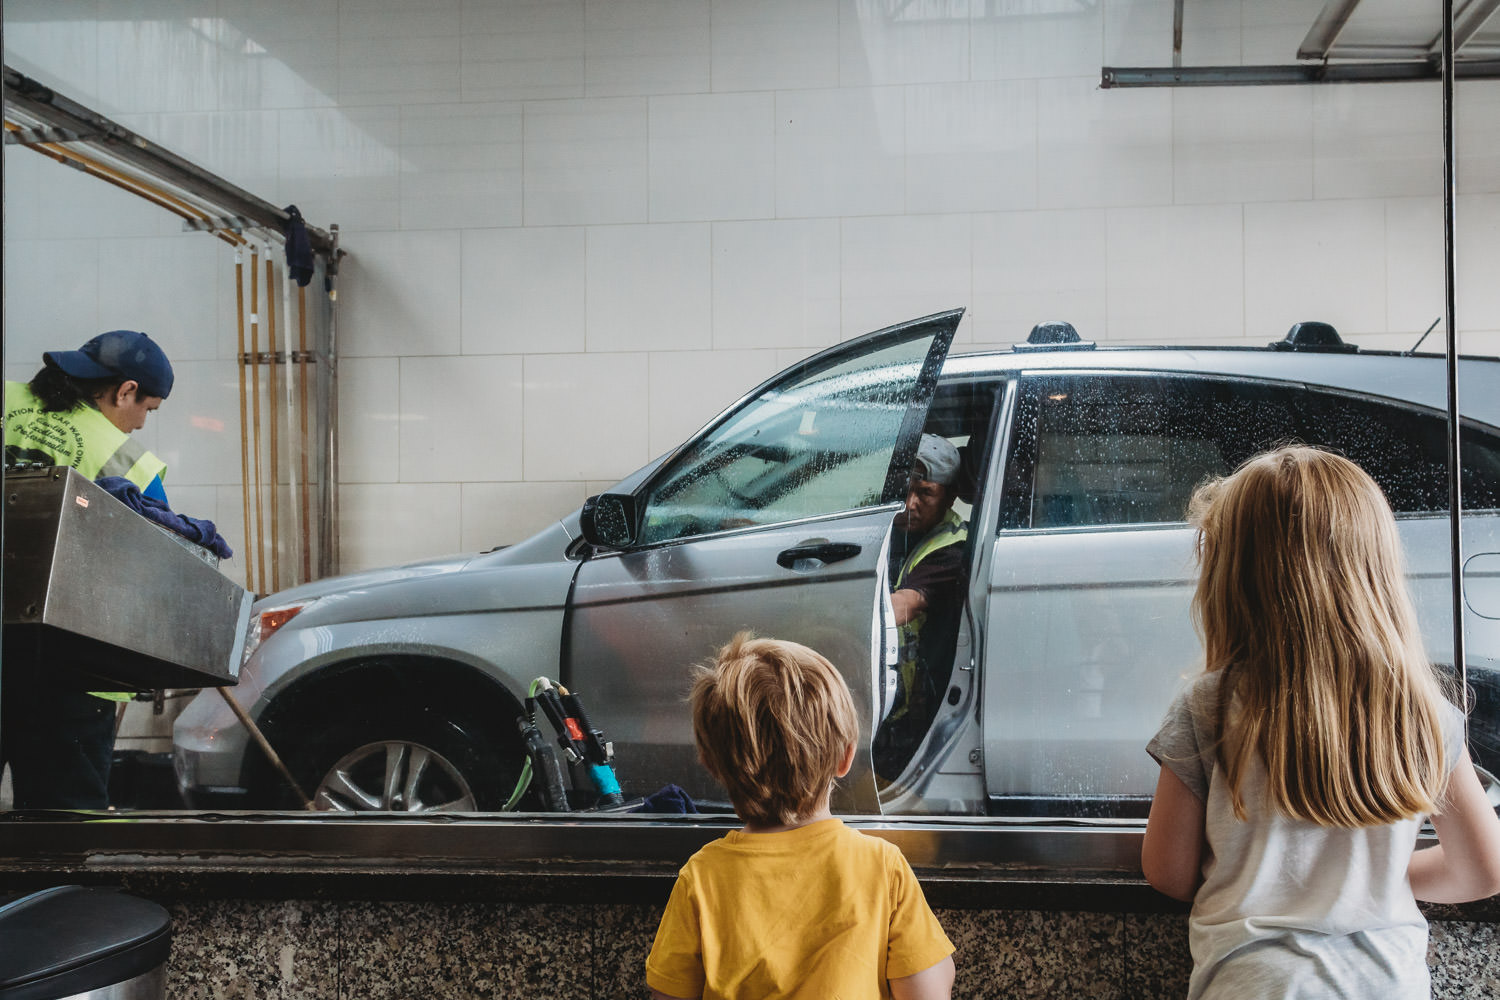 Two children watch their car get washed.